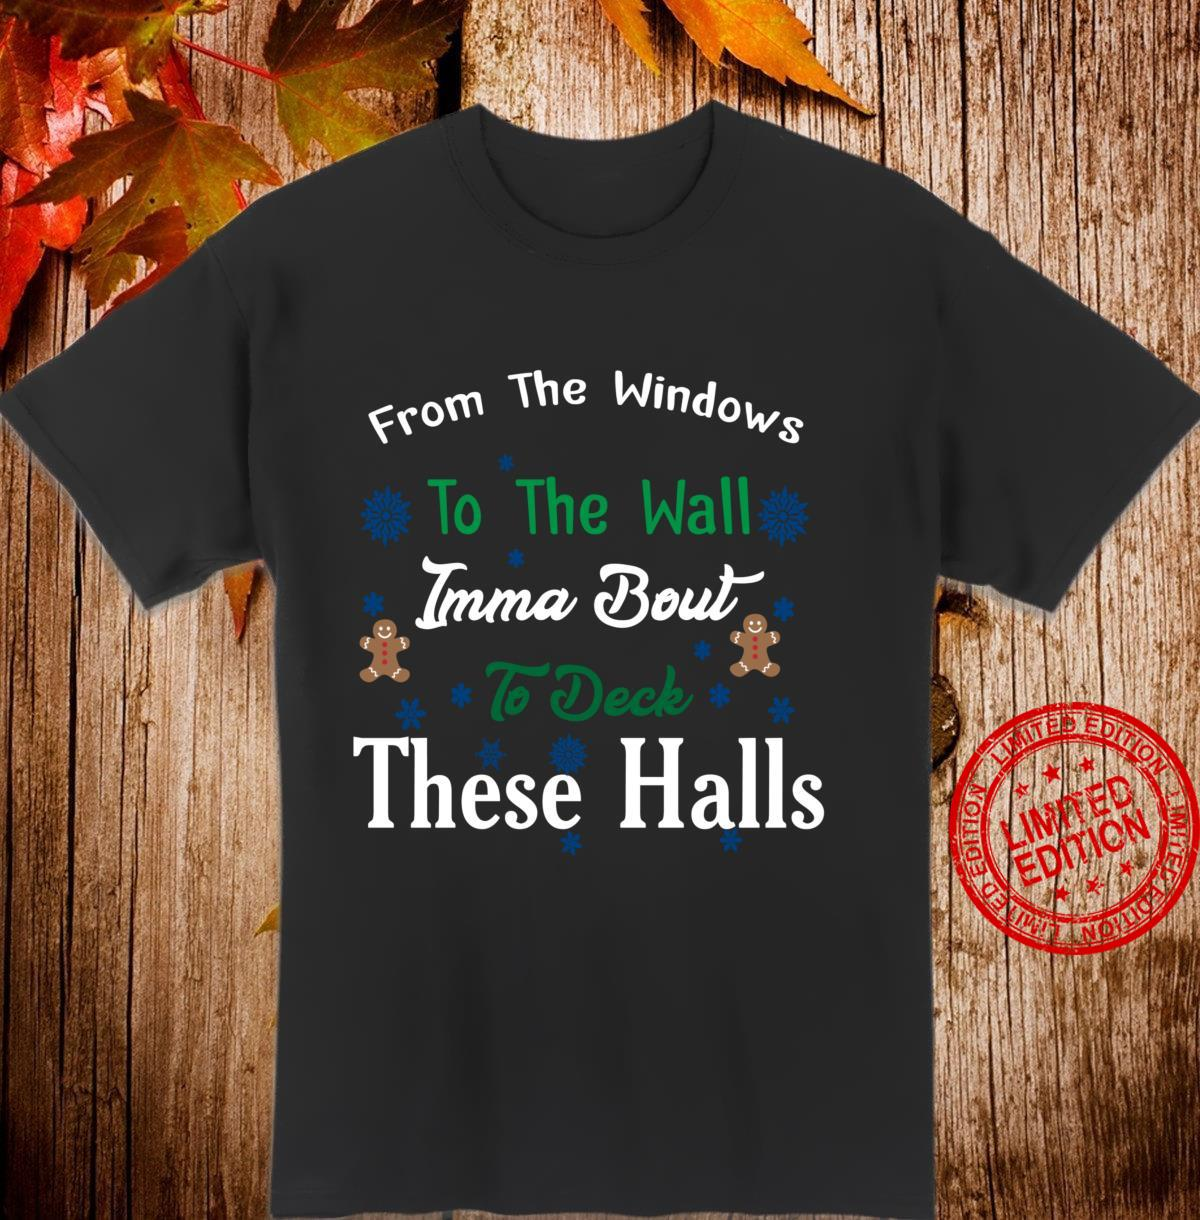 From The Windows To The Wall Imma Bout To Deck These Halls Shirt